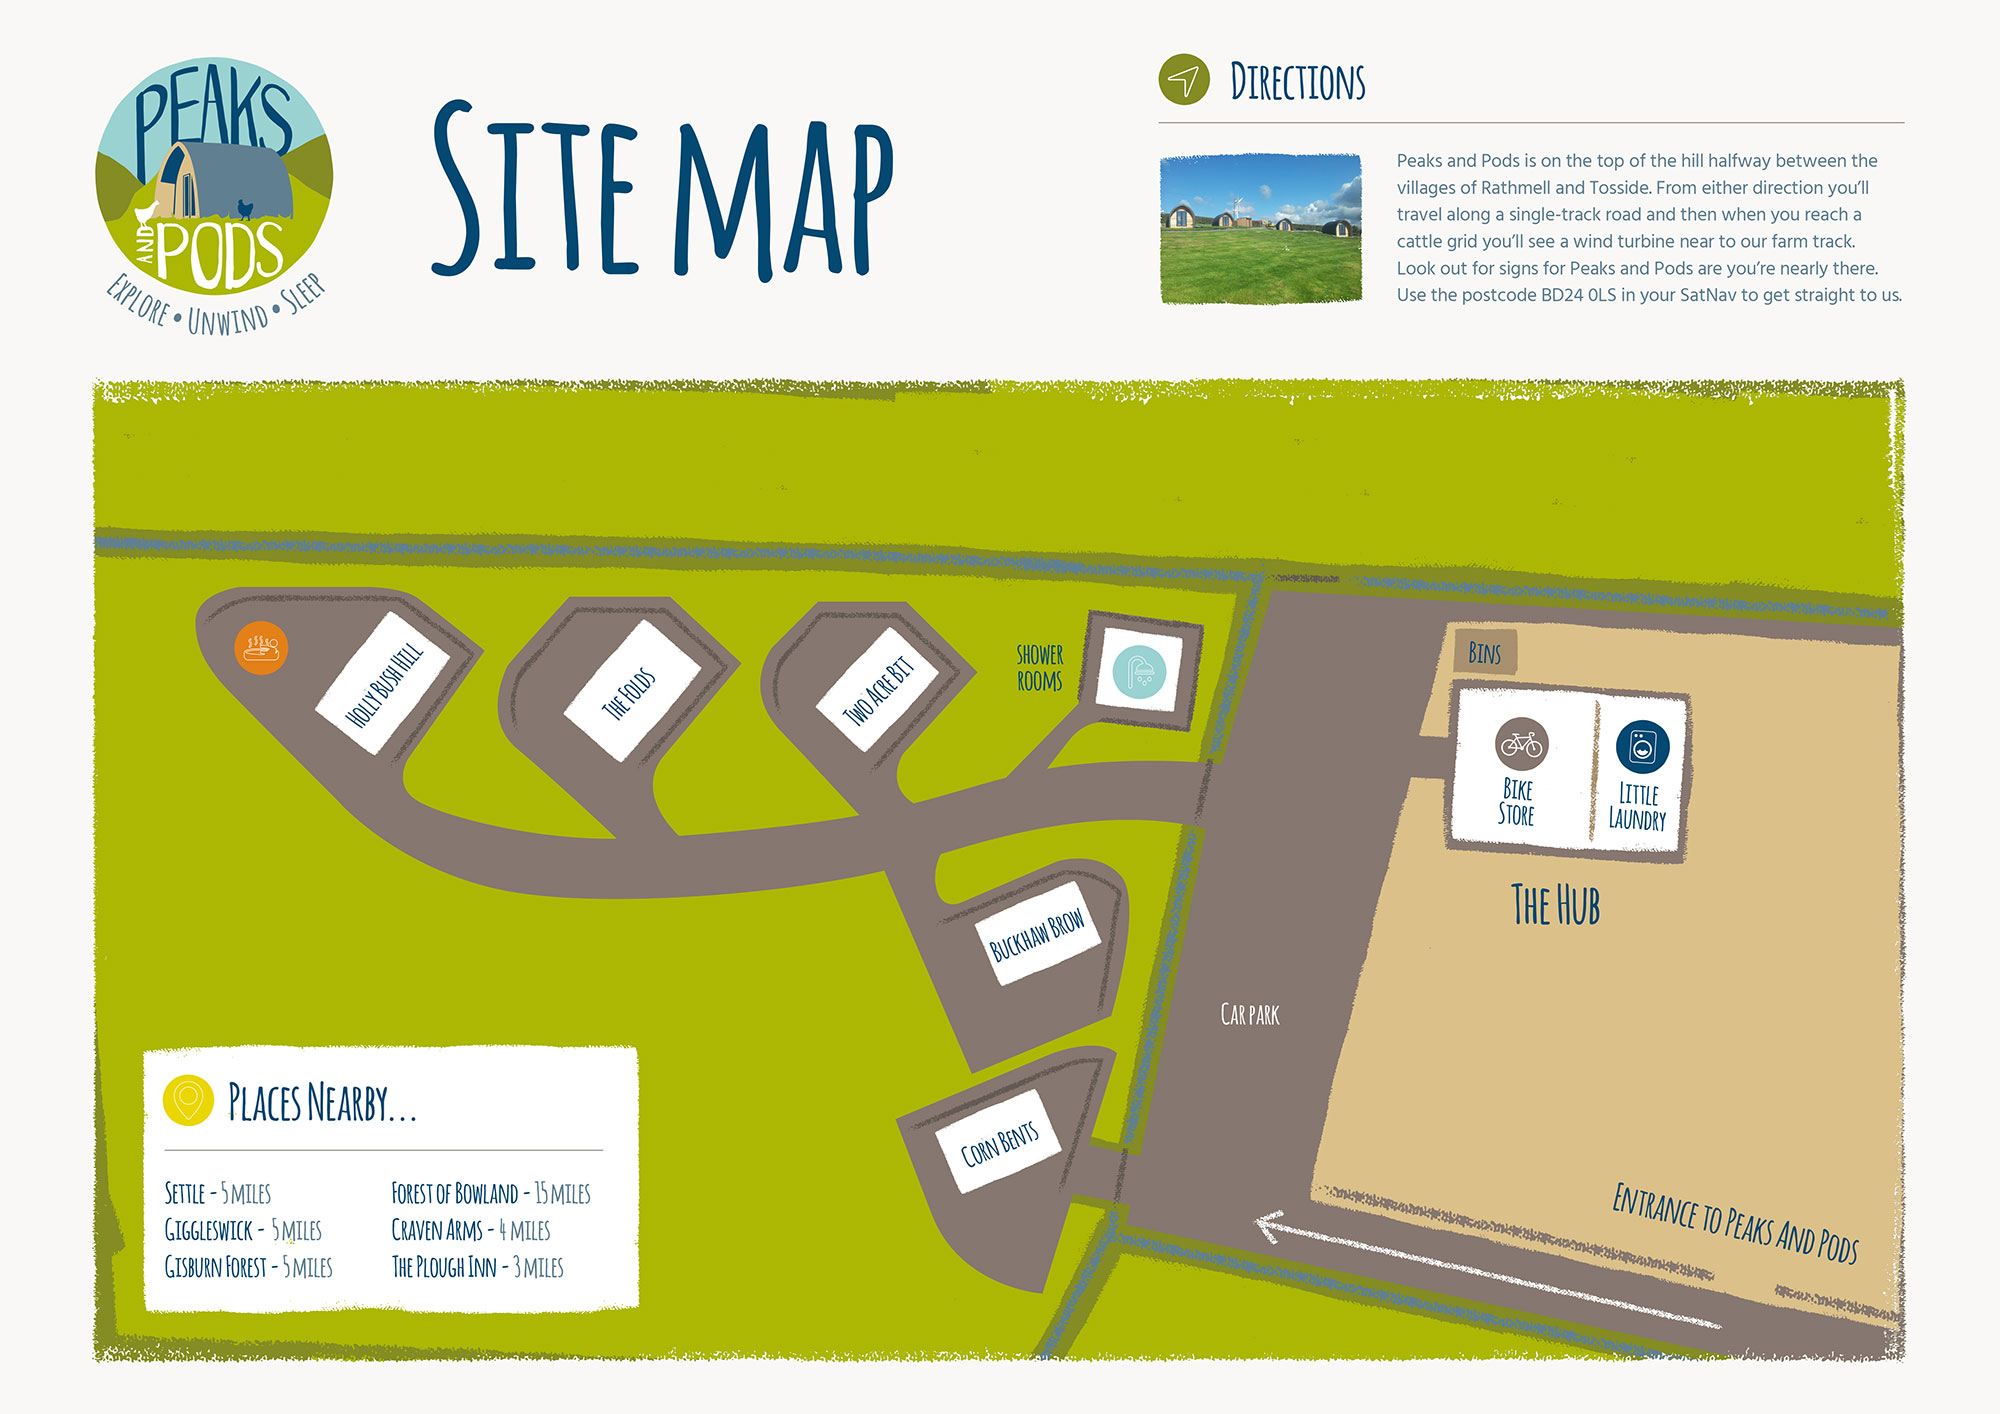 Peaks and Pods Site Map